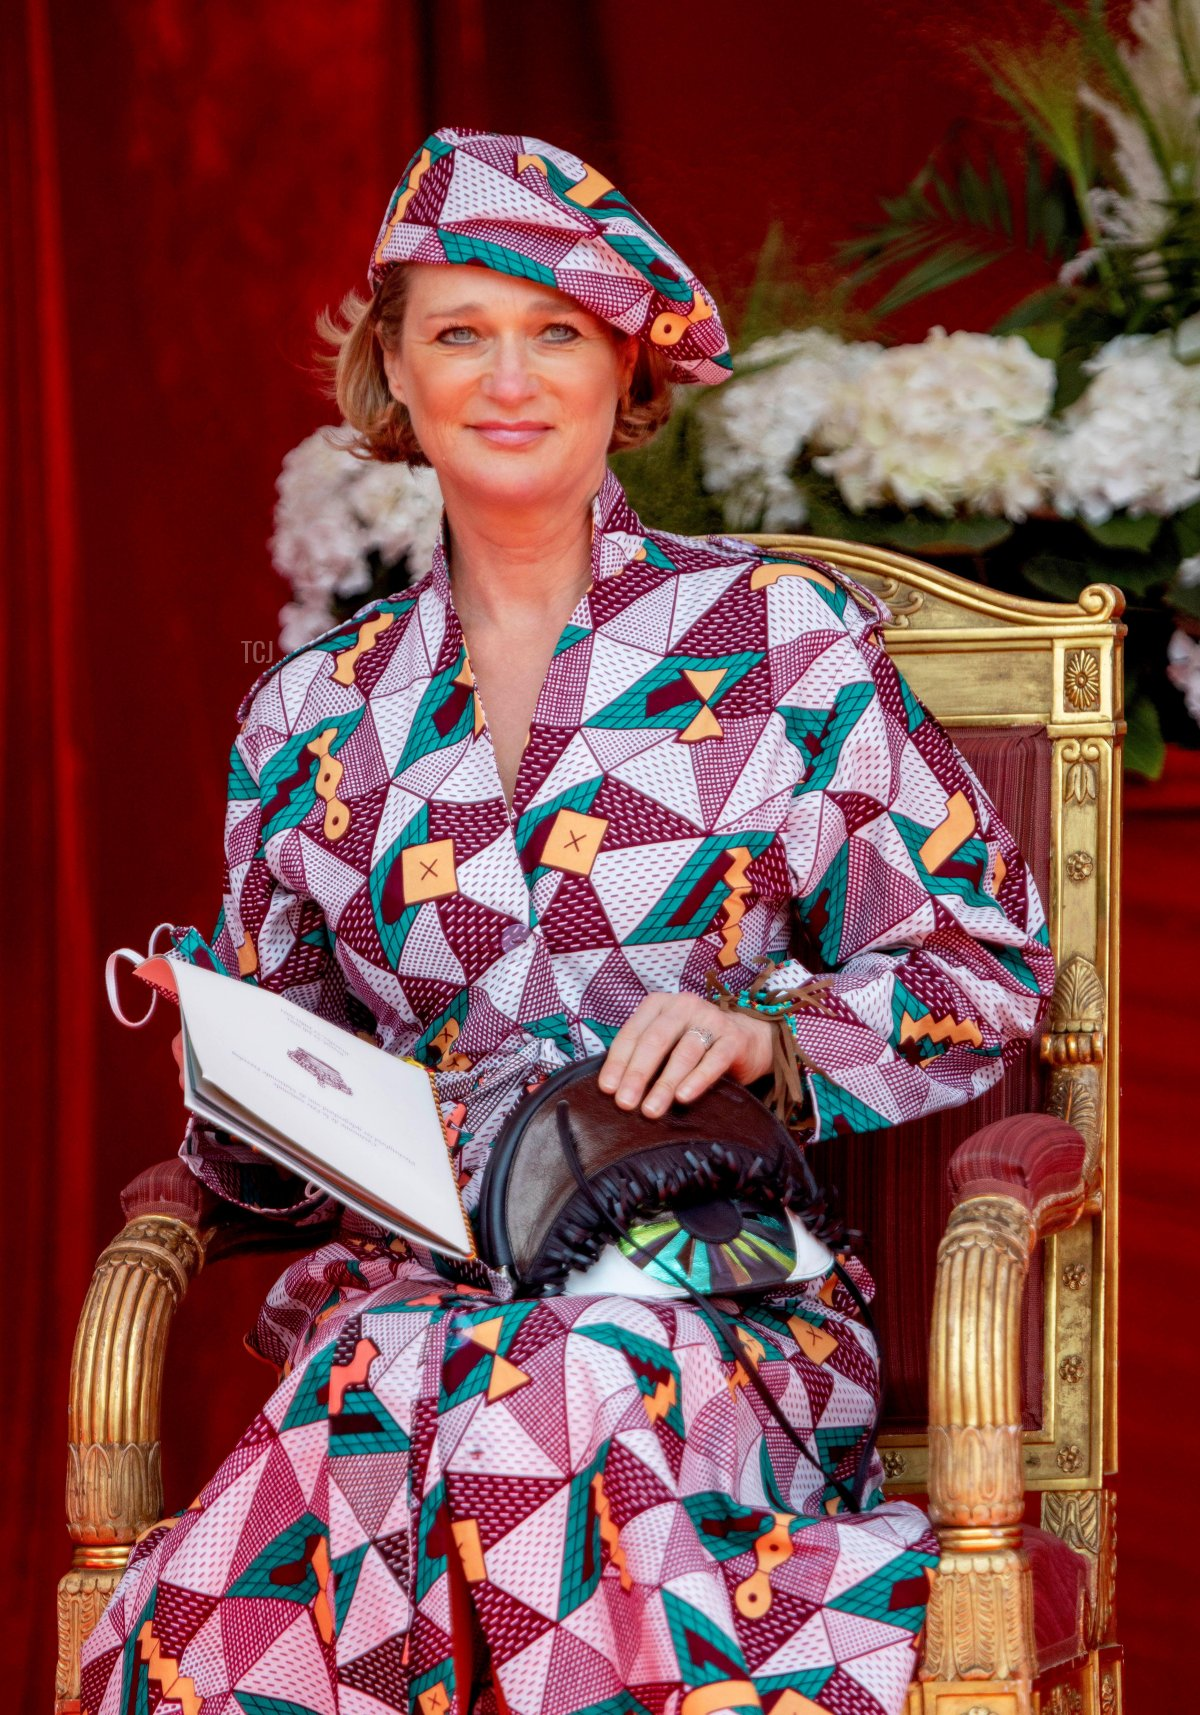 Princess Delphine of Belgium attends the military parade in Brussels on National Day, July 21, 2021